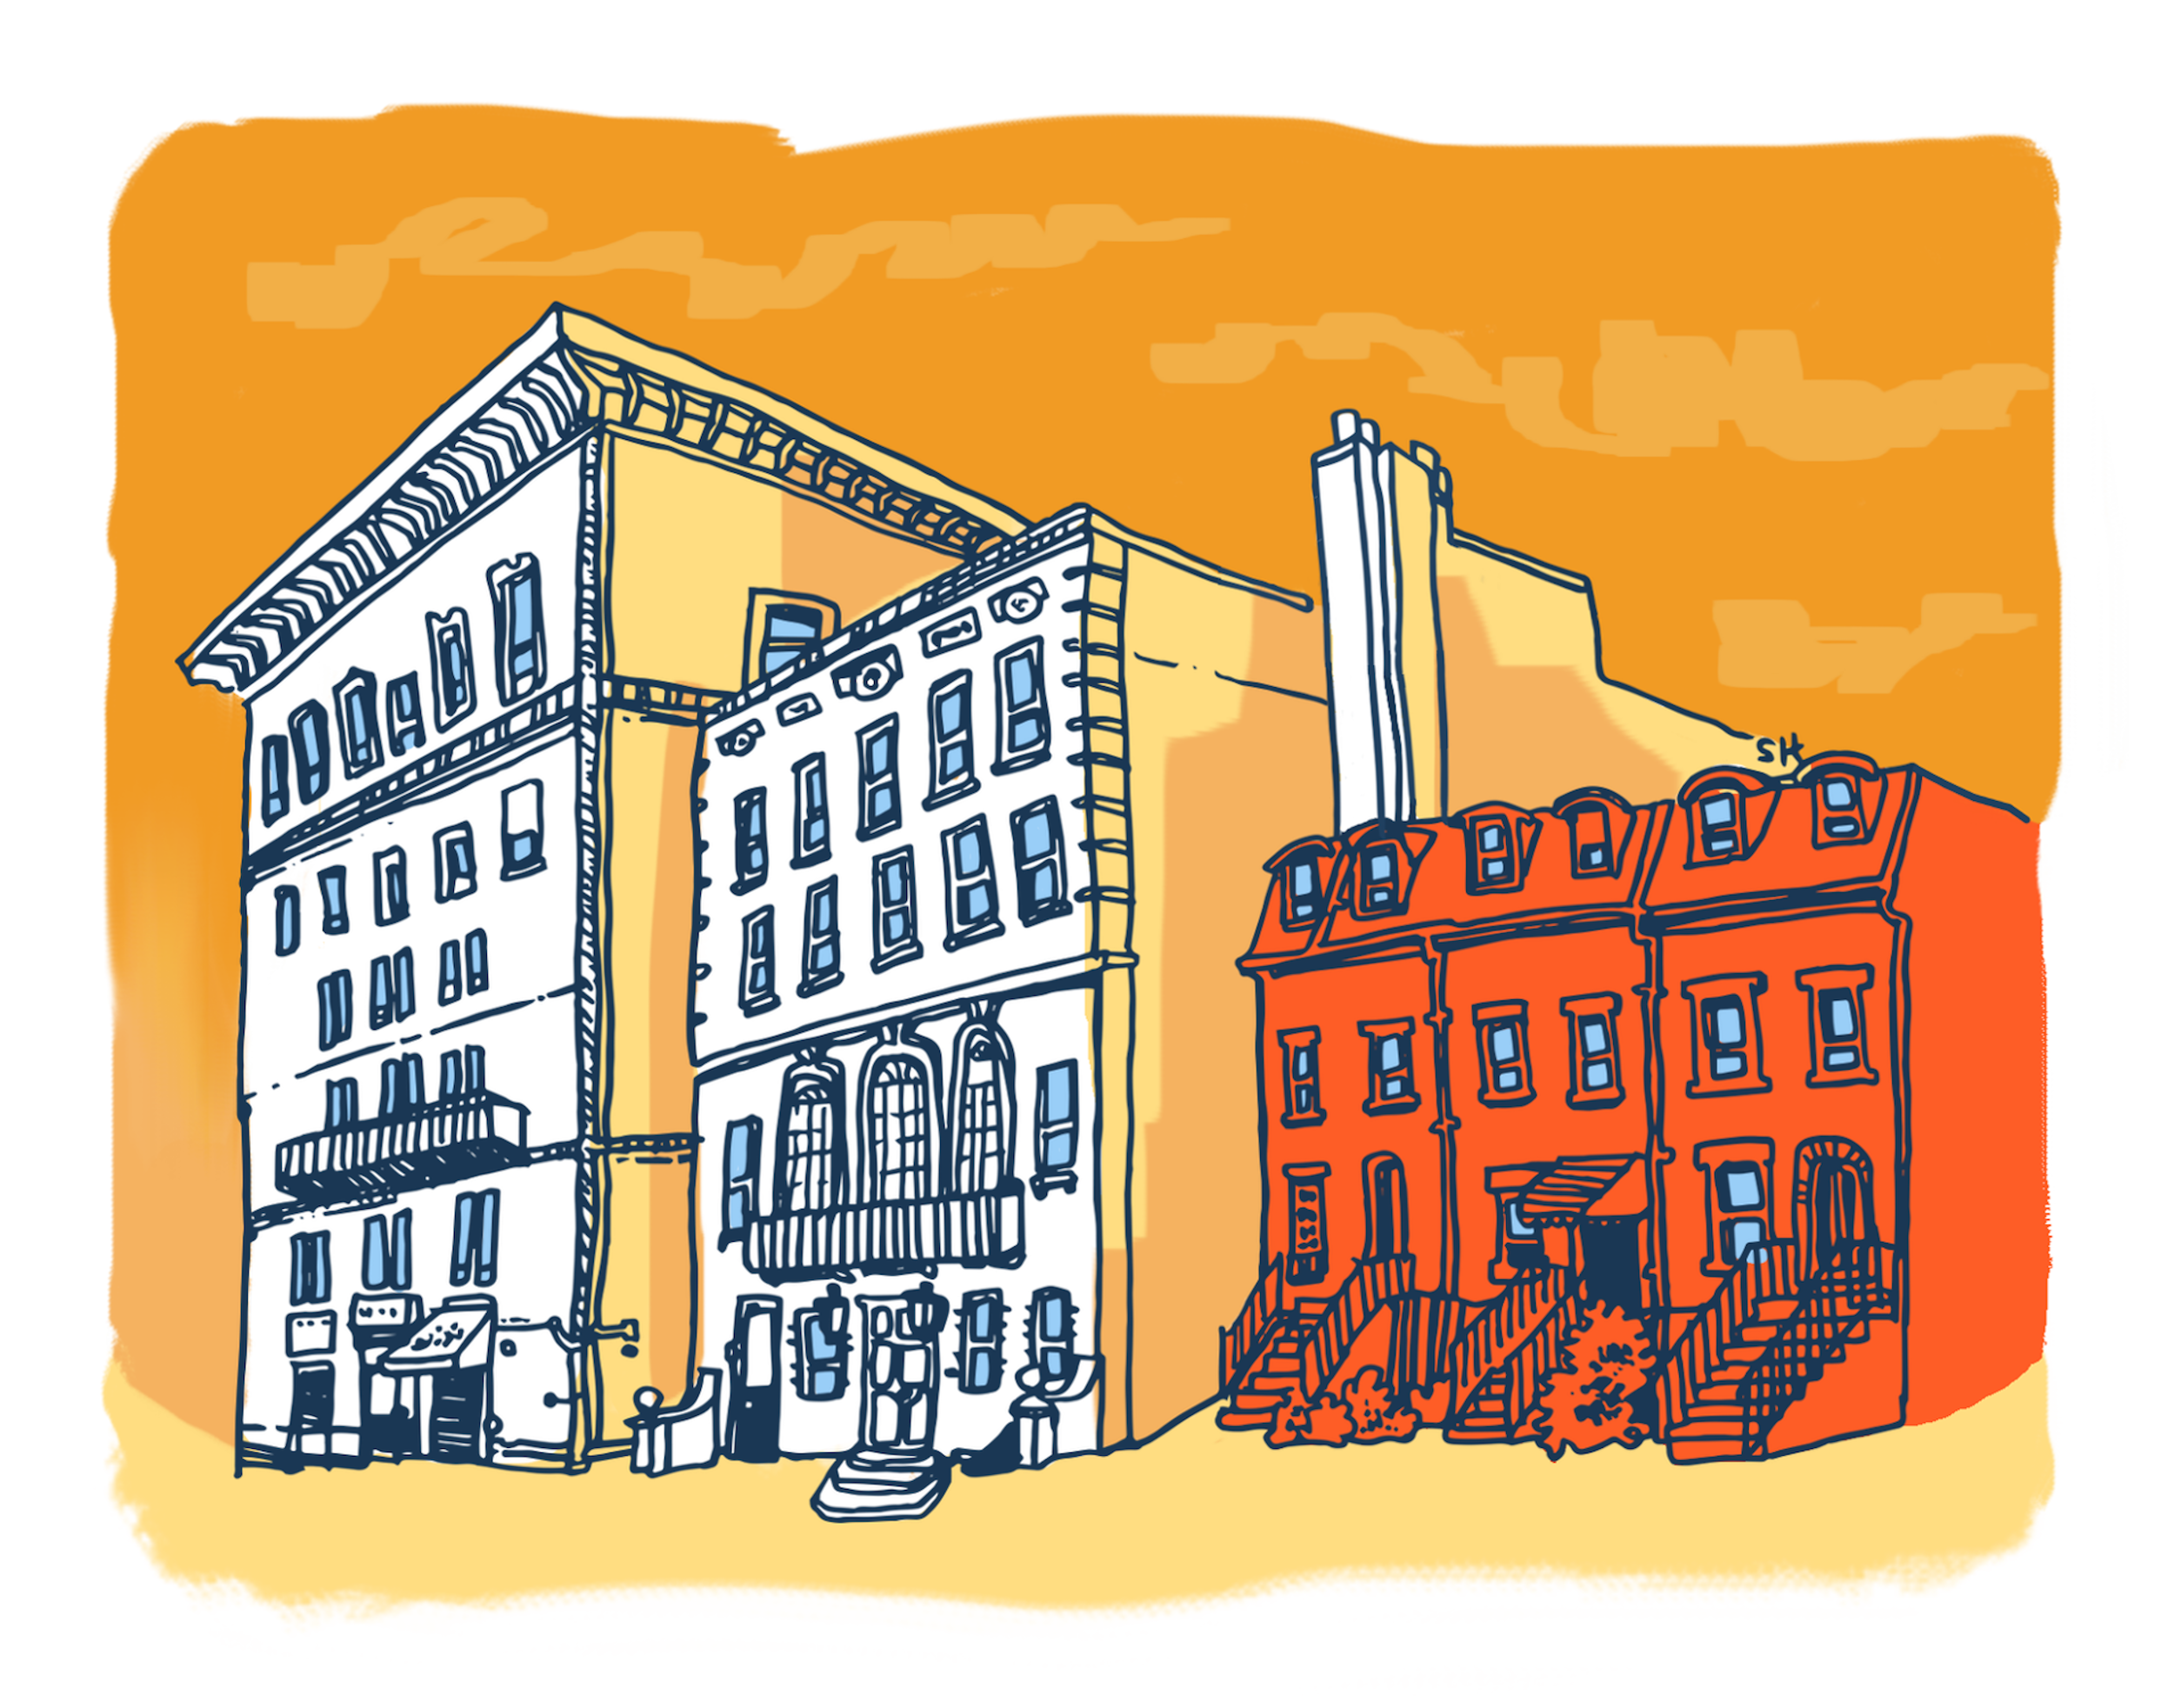 A colorful illustration of three buildings next to each other.